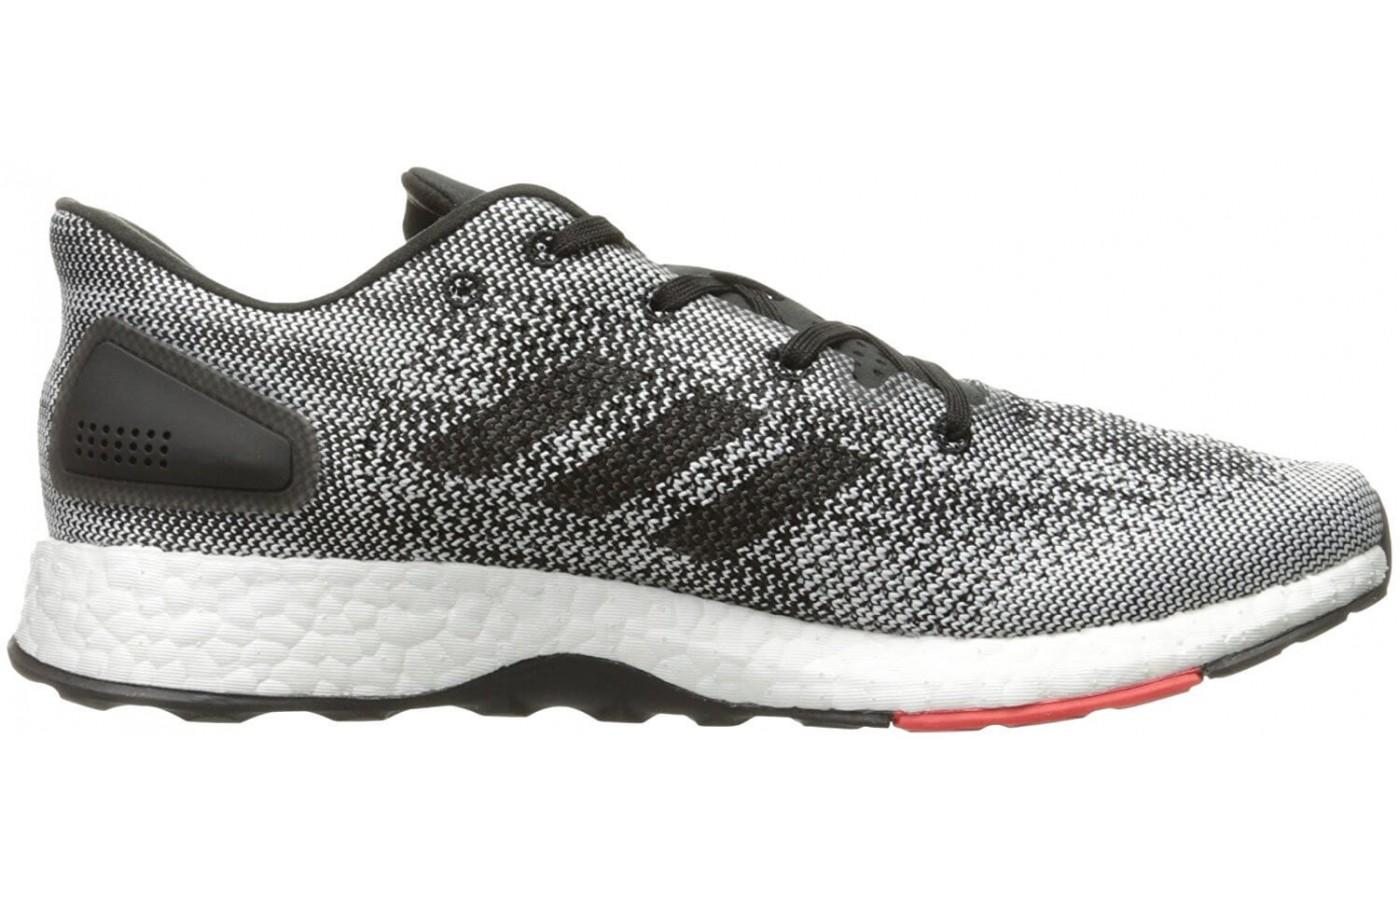 Neutral coloring make this a classically good looking running shoe.